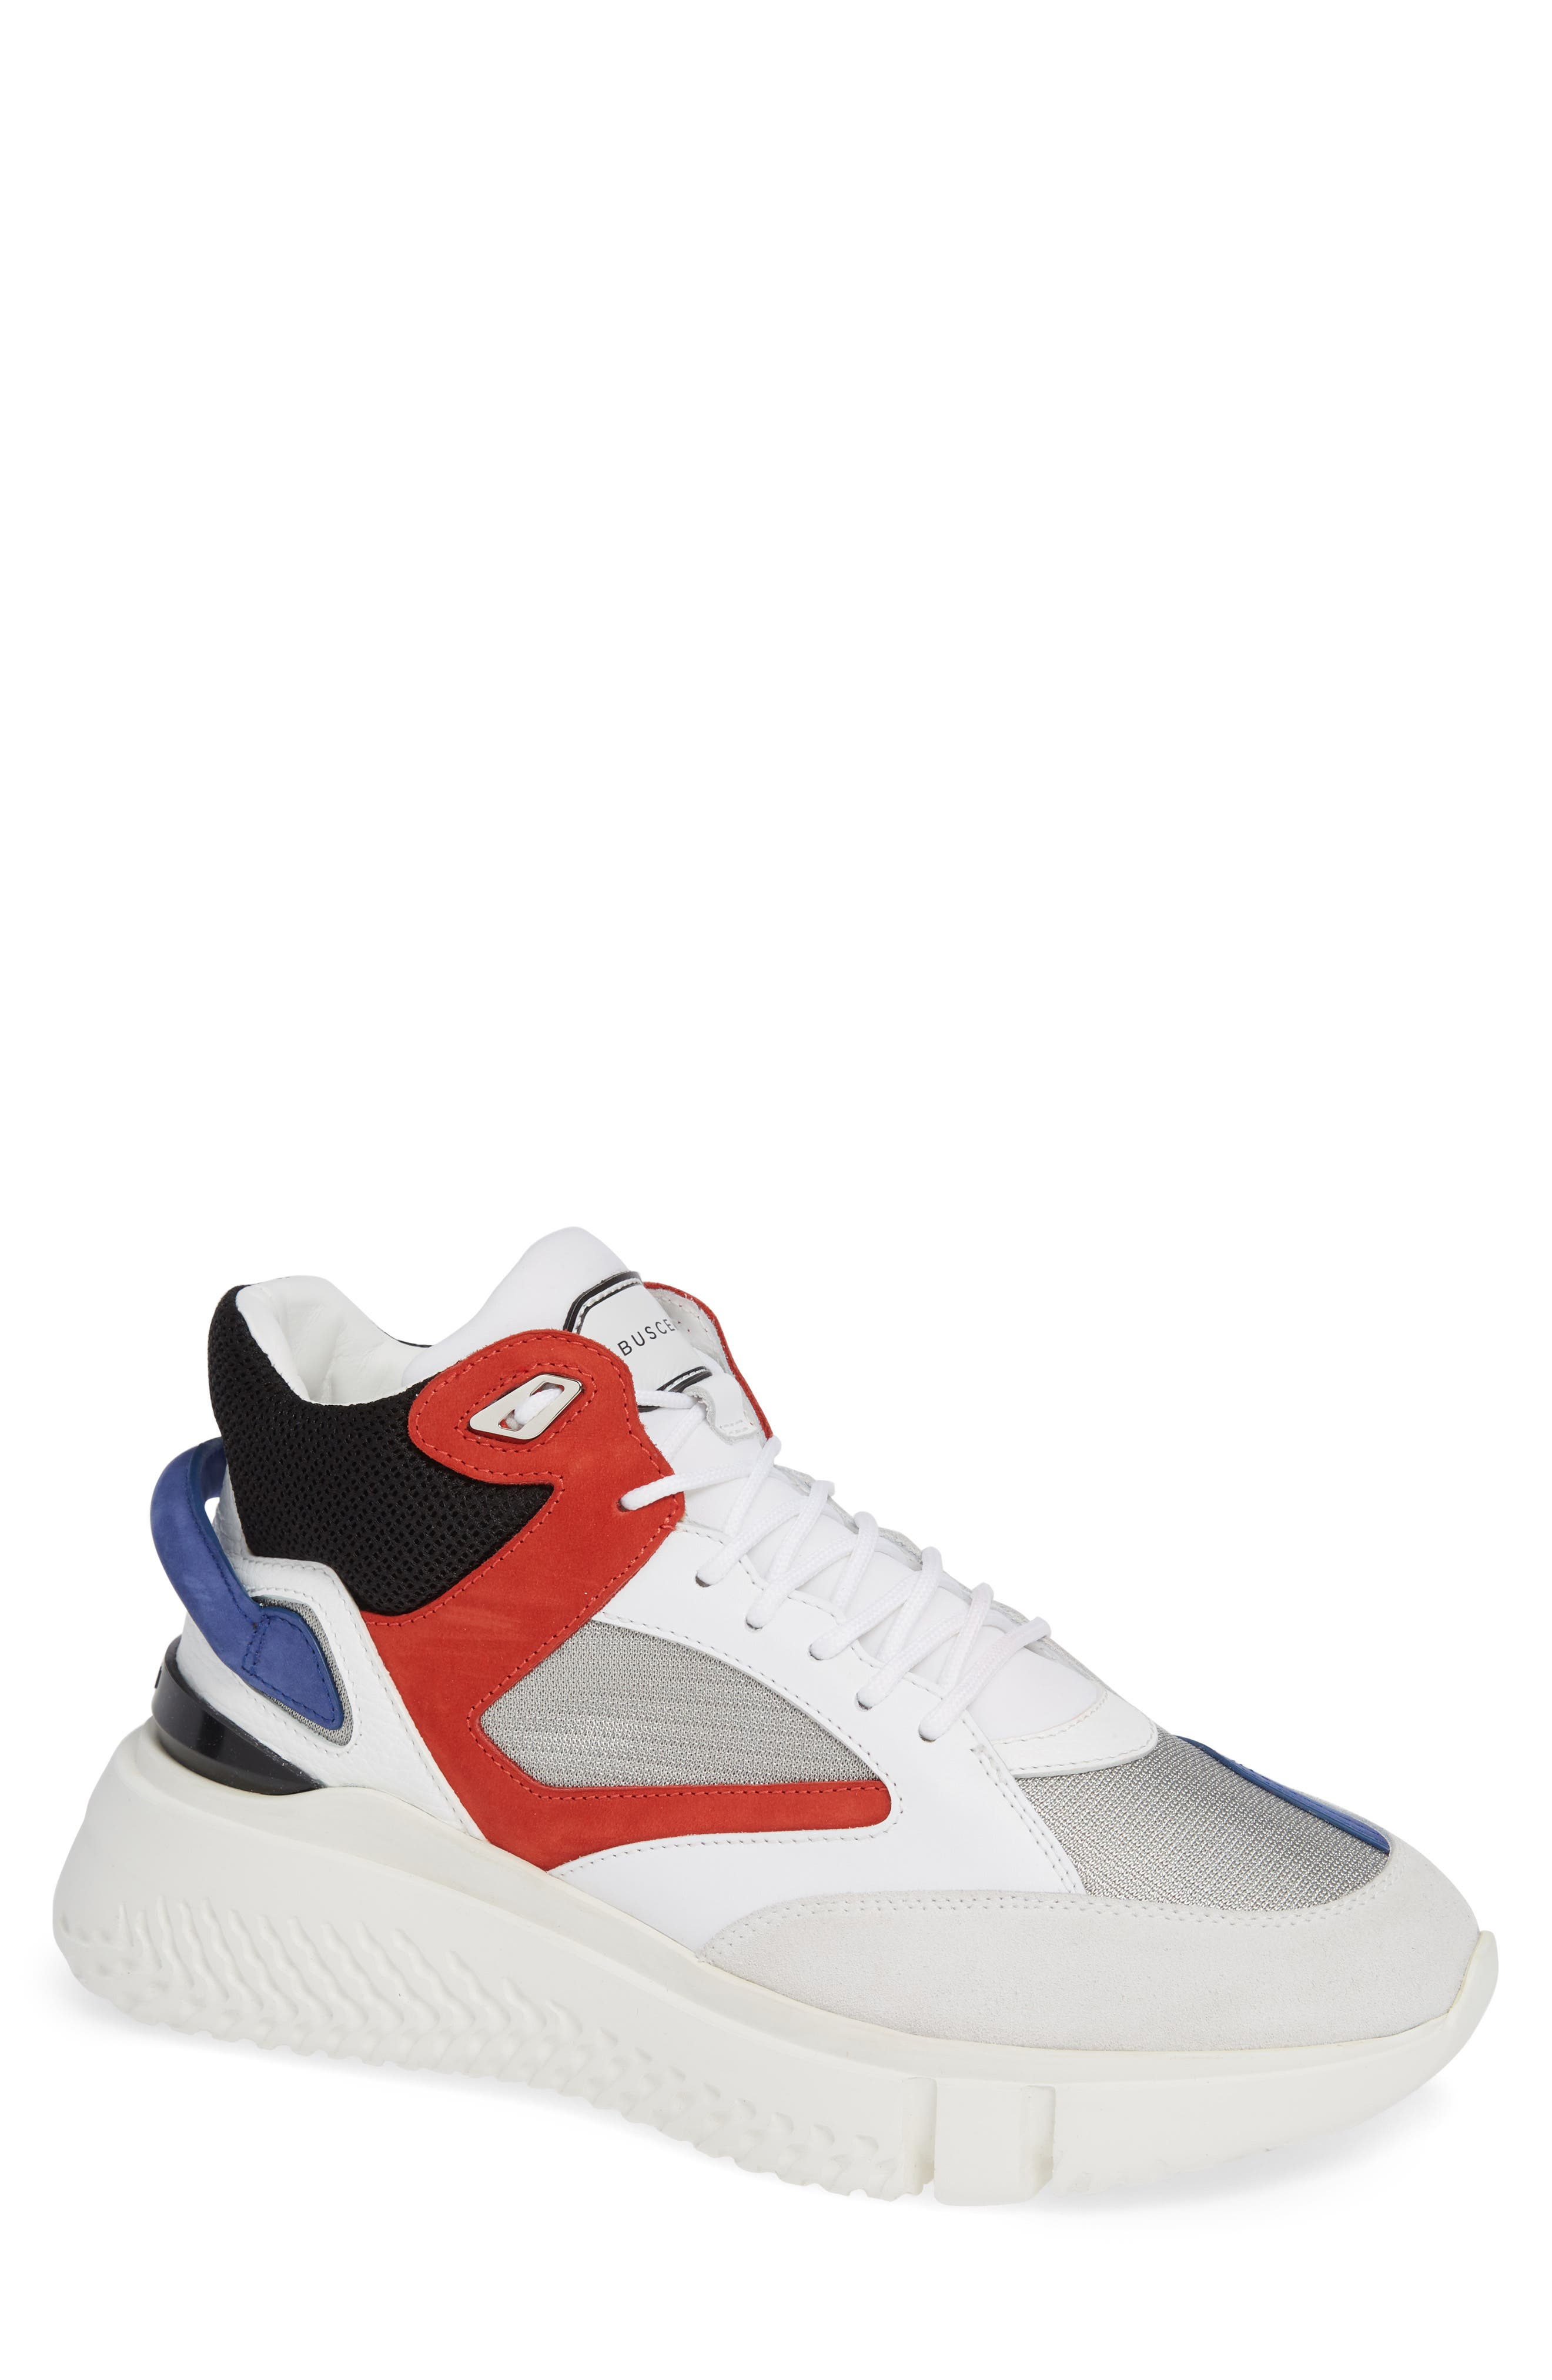 BUSCEMI Men'S Veloce Mid-Top Runner Sneakers in White